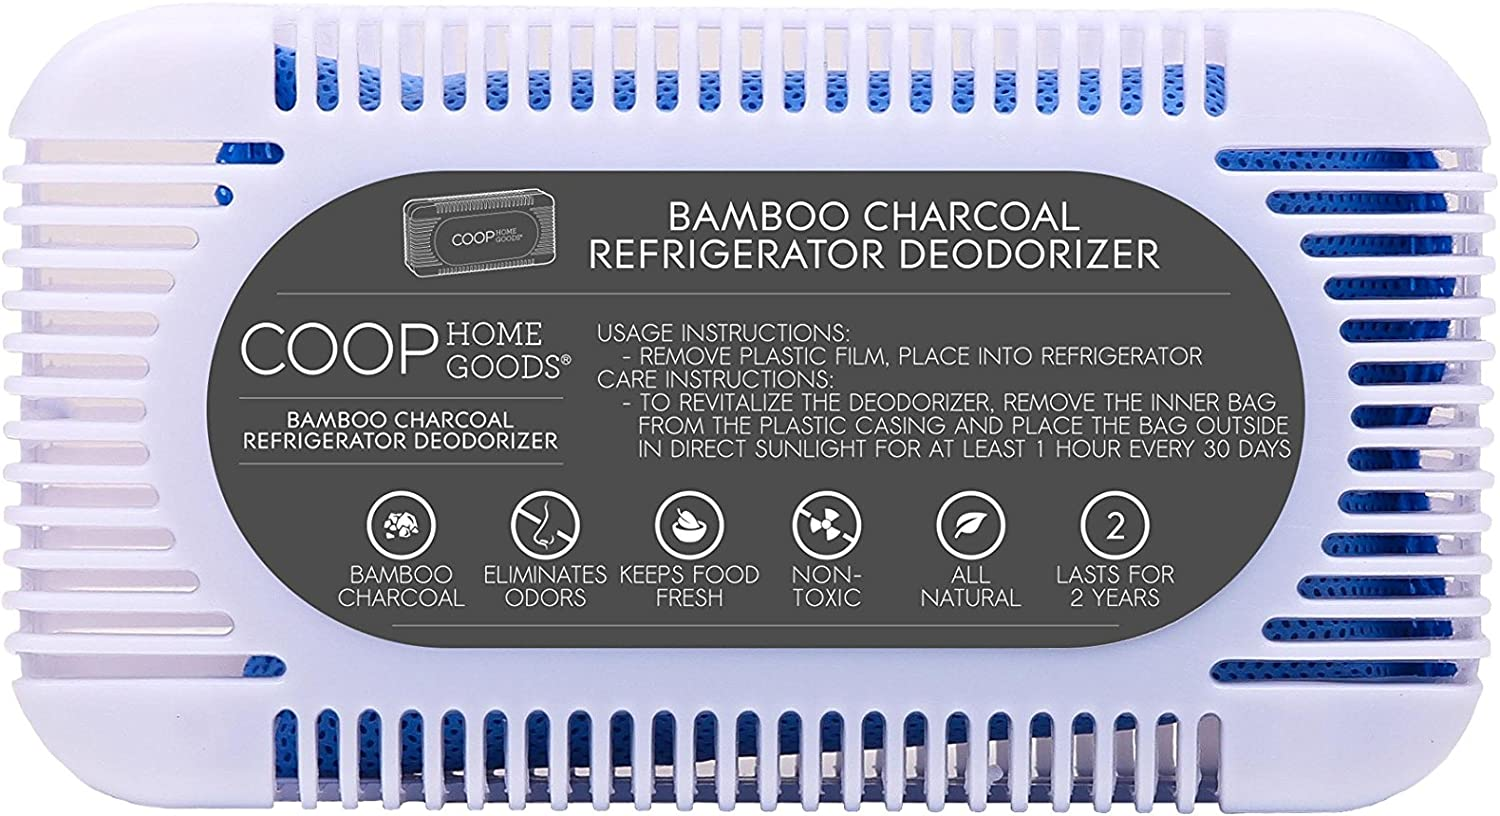 "Coop Home Goods - Refrigerator/Fridge Deodorizer (5"" x 2 3/4"" x 1 3/8"") - Natural Bamboo Activated Charcoal Air Purifier Odor Absorber - Keep Your Fridge Fresh - Reusable for 2 Years - Eco-Friendly"